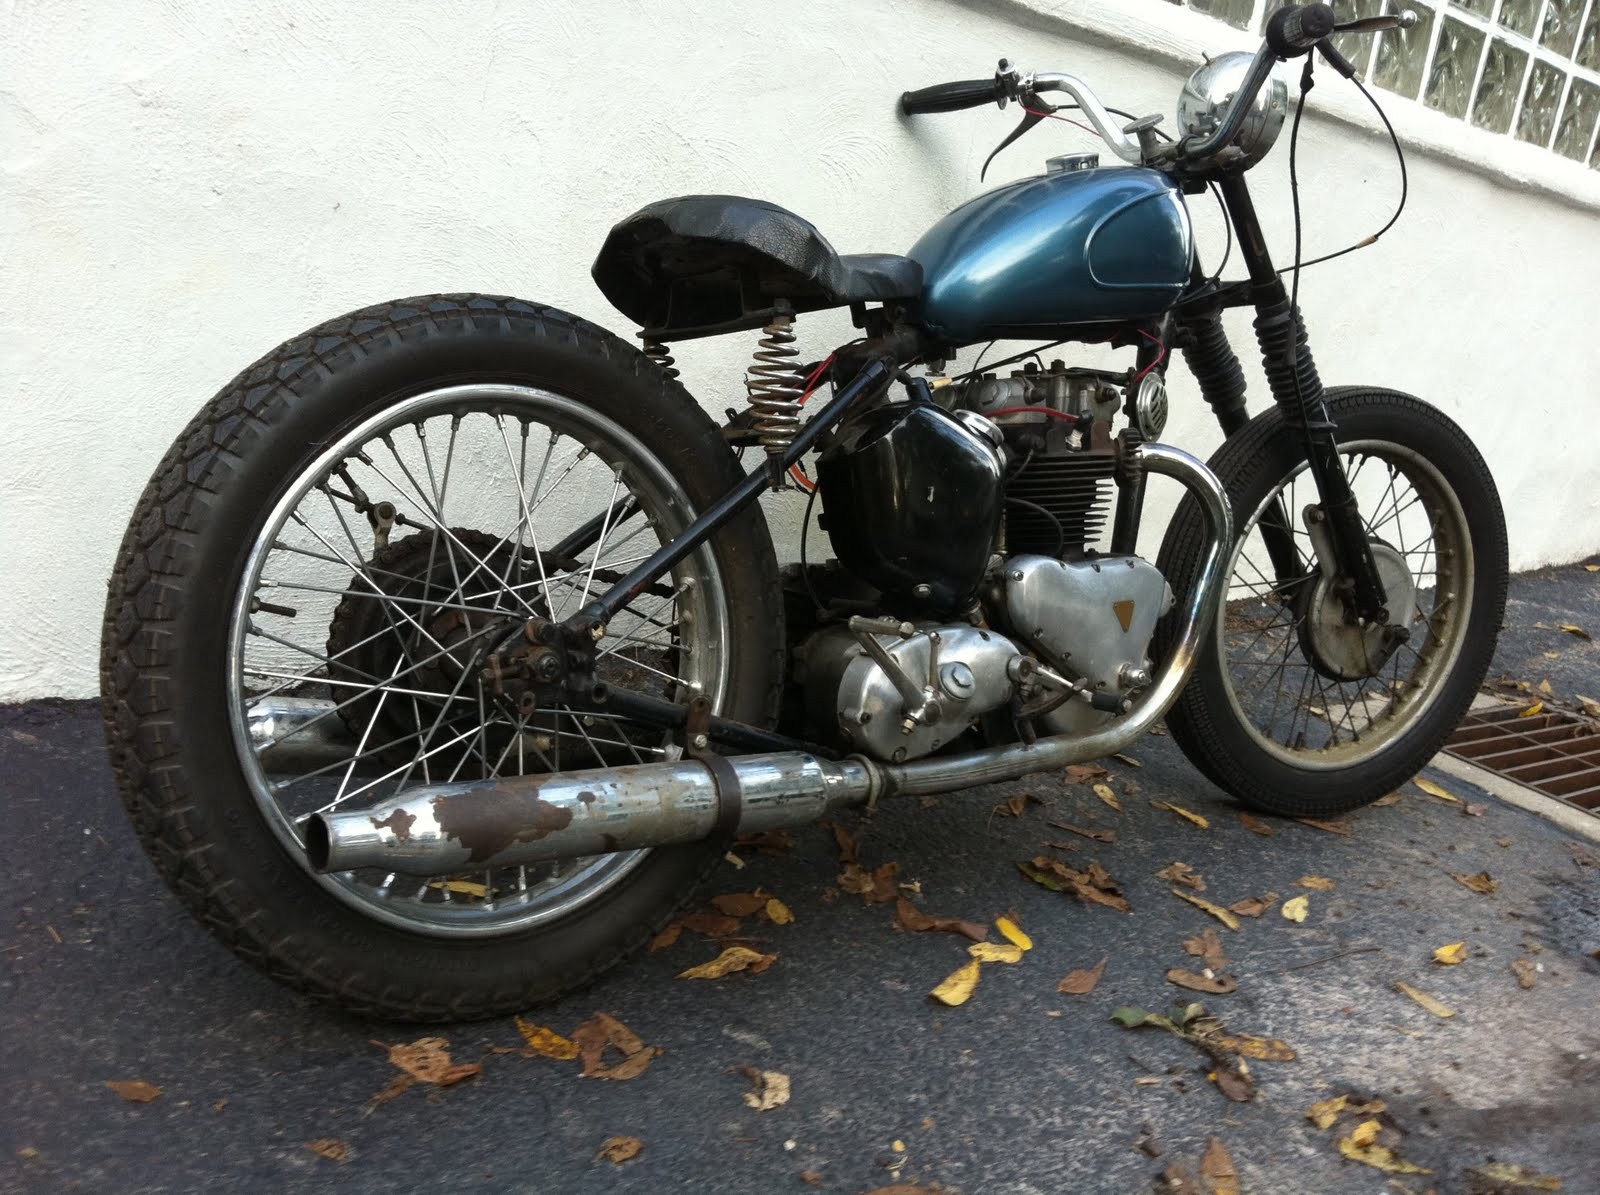 Me And This Motorcycle: New toy, 1951 Triumph 5t Speed Twin Bobber